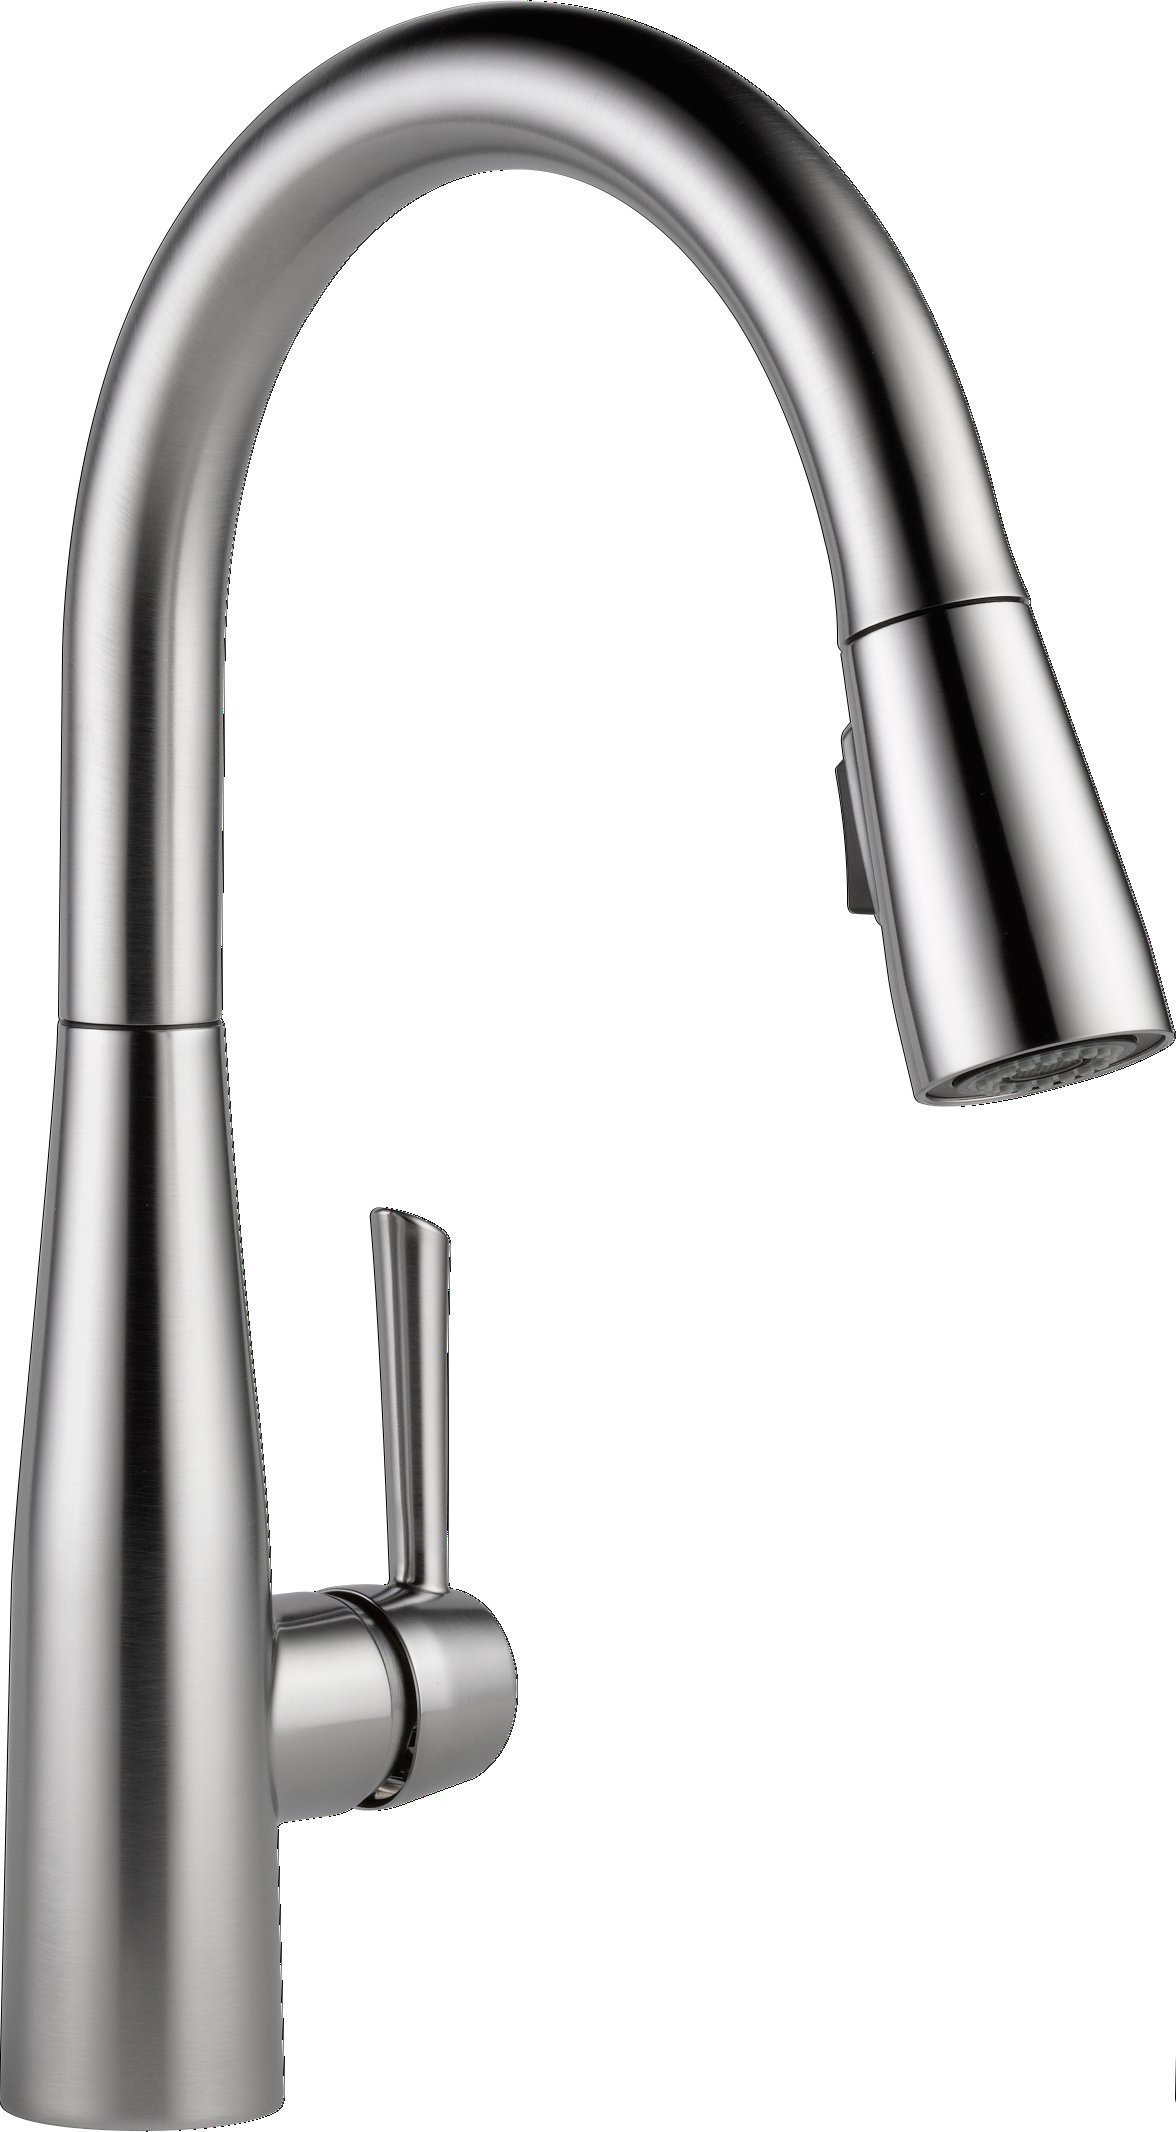 Delta Faucet Essa Single-Handle Kitchen Sink Faucet with Pull Down Sprayer and Magnetic Docking Spray Head, Arctic Stainless 9113-AR-DST by DELTA FAUCET